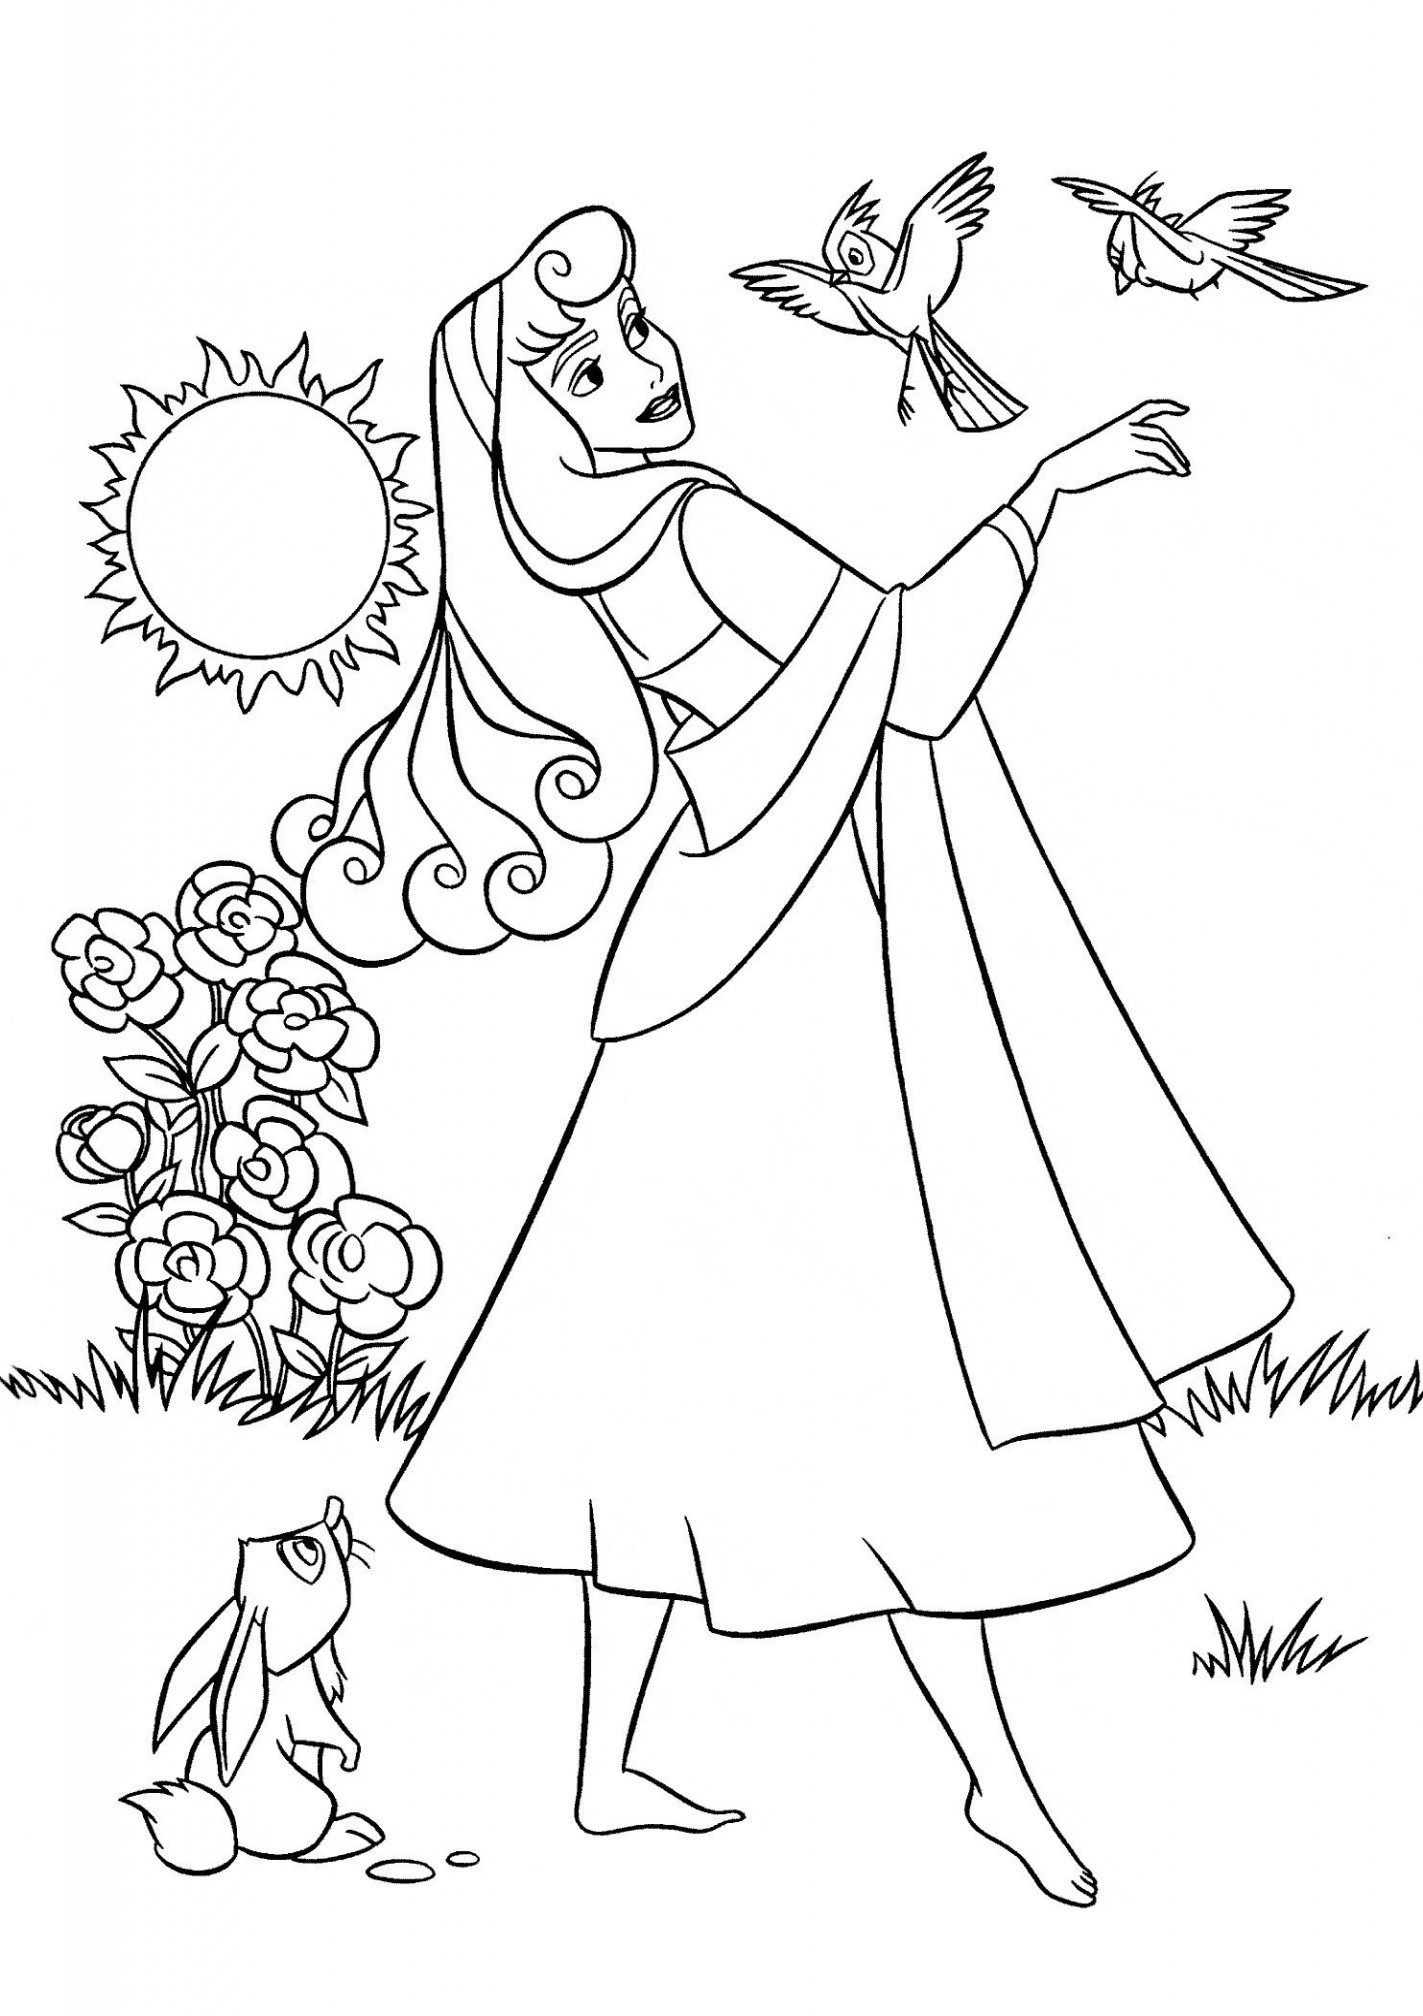 24 Inspired Picture Of Aurora Coloring Pages Davemelillo Com Disney Princess Coloring Pages Sleeping Beauty Coloring Pages Princess Coloring Pages